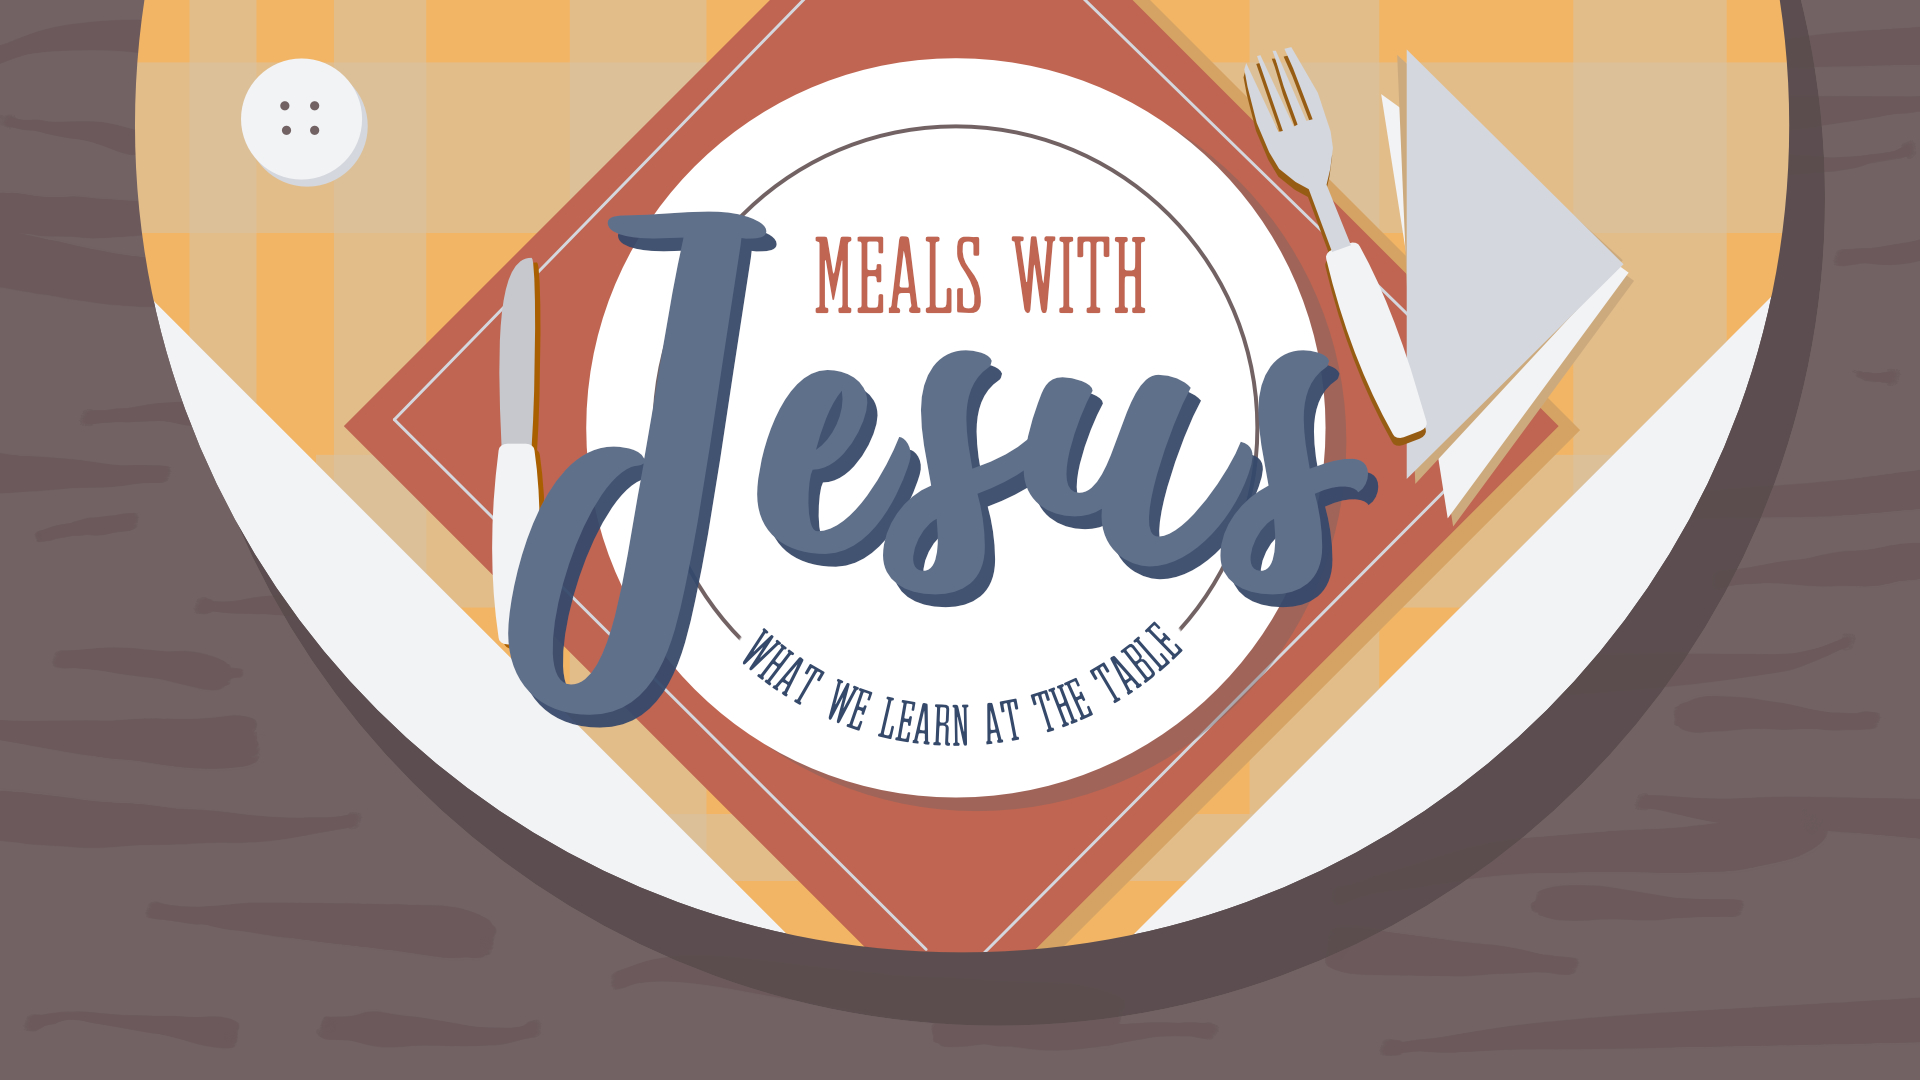 Meals With Jesus:The Story it Tells